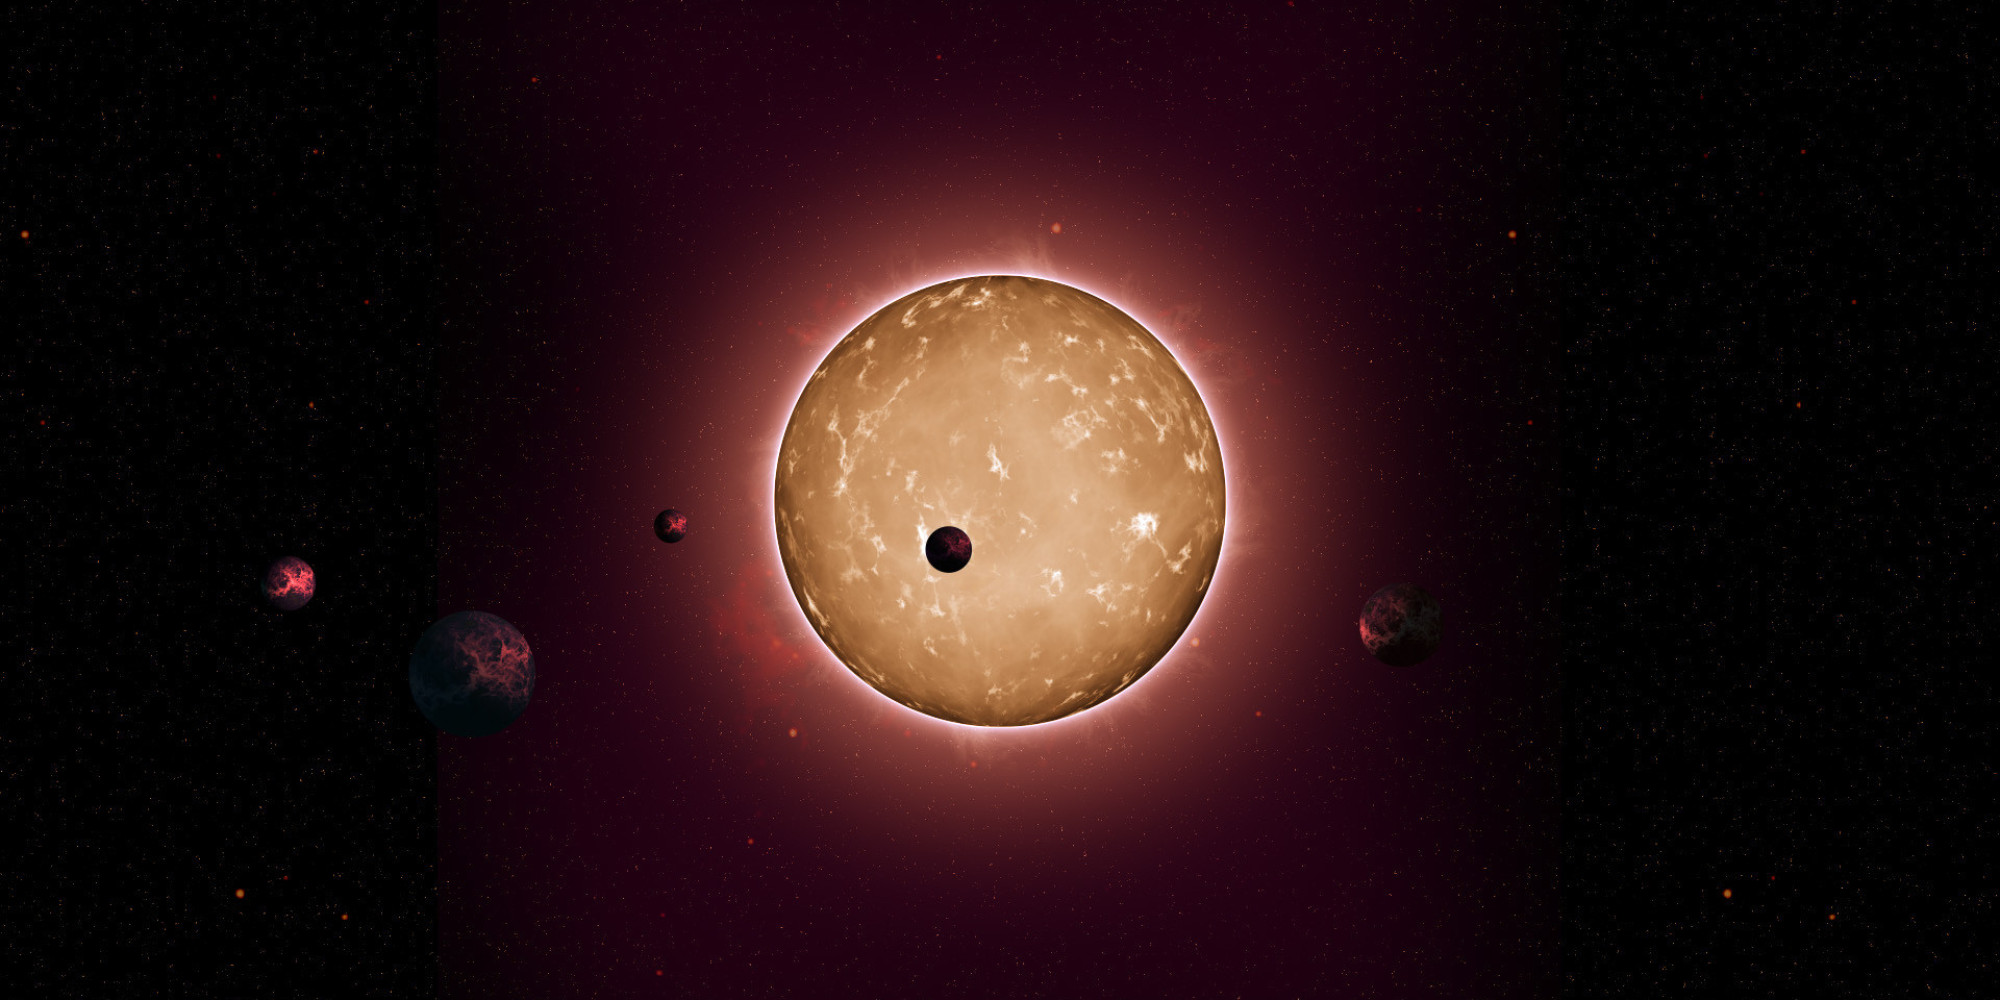 Super Ancient Solar System Sparks New Thinking About